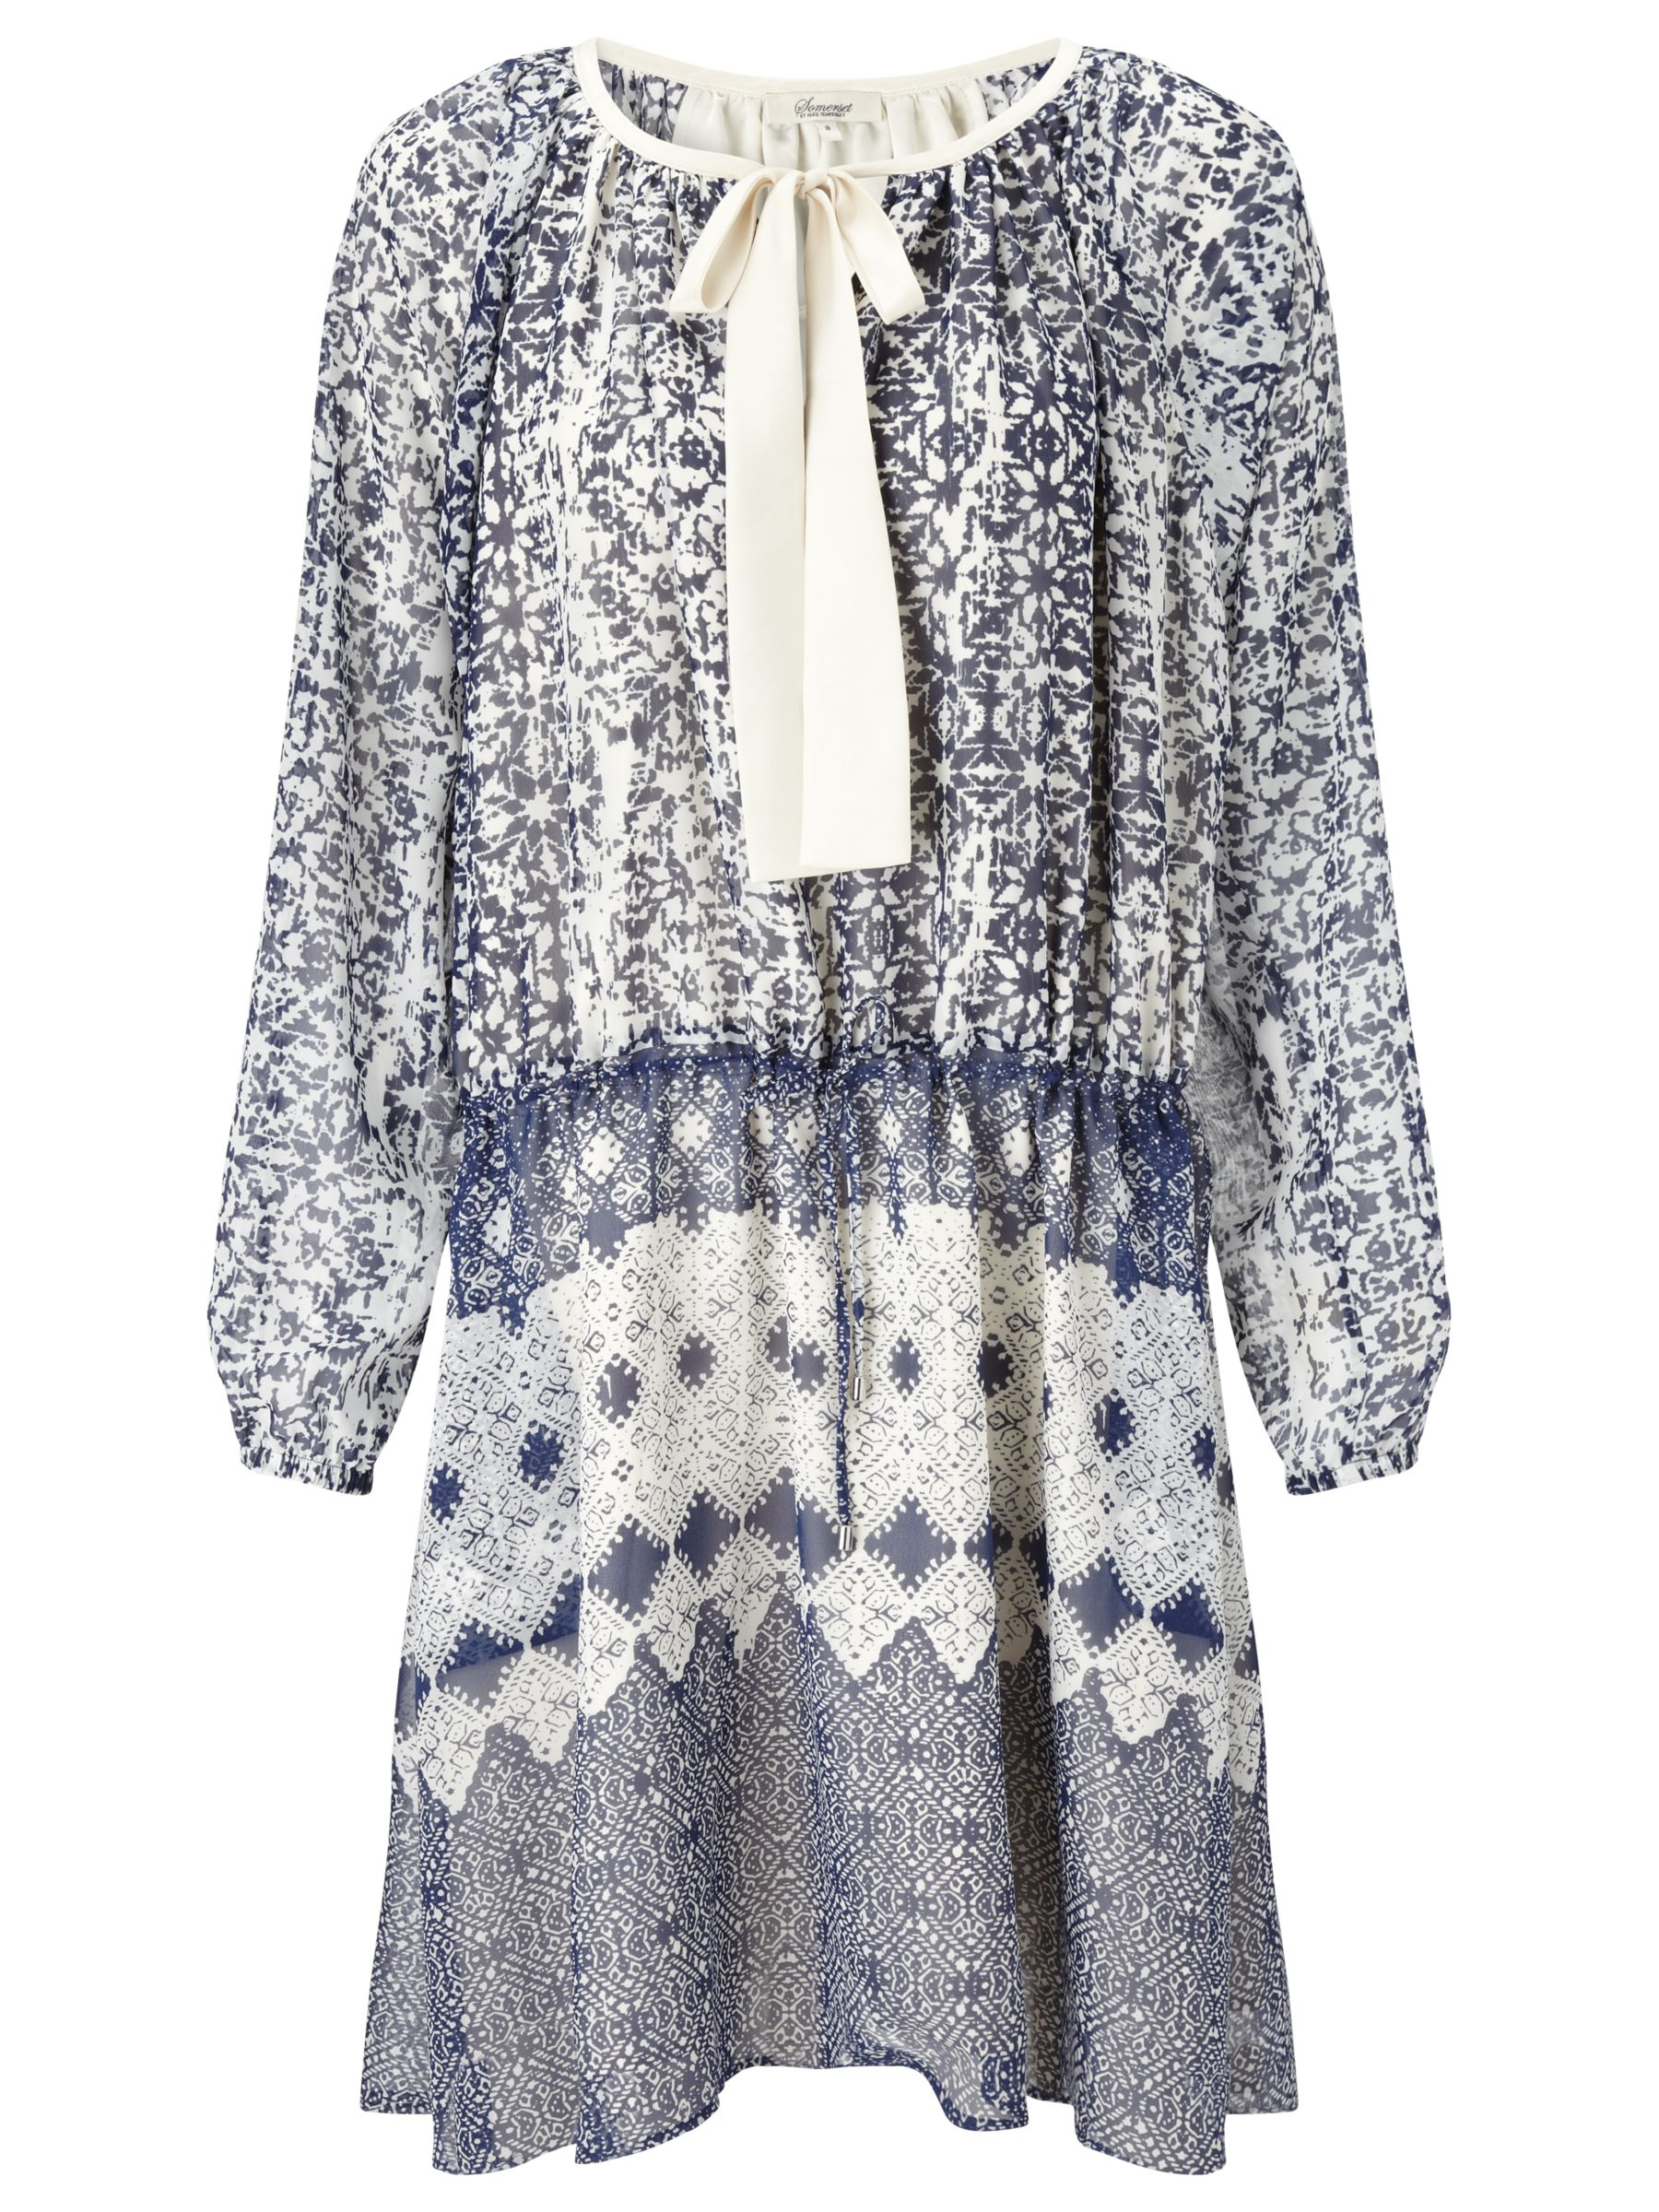 somerset by alice temperley tie waist tile dress blue, somerset, alice, temperley, tie, waist, tile, dress, blue, somerset by alice temperley, 10|12|8|18|14|6|16, edition magazine, into the blue, fashion magazine, the edit a seventies spring, women, womens dresses, inactive womenswear, outfit ideas, brands l-z, 1813459